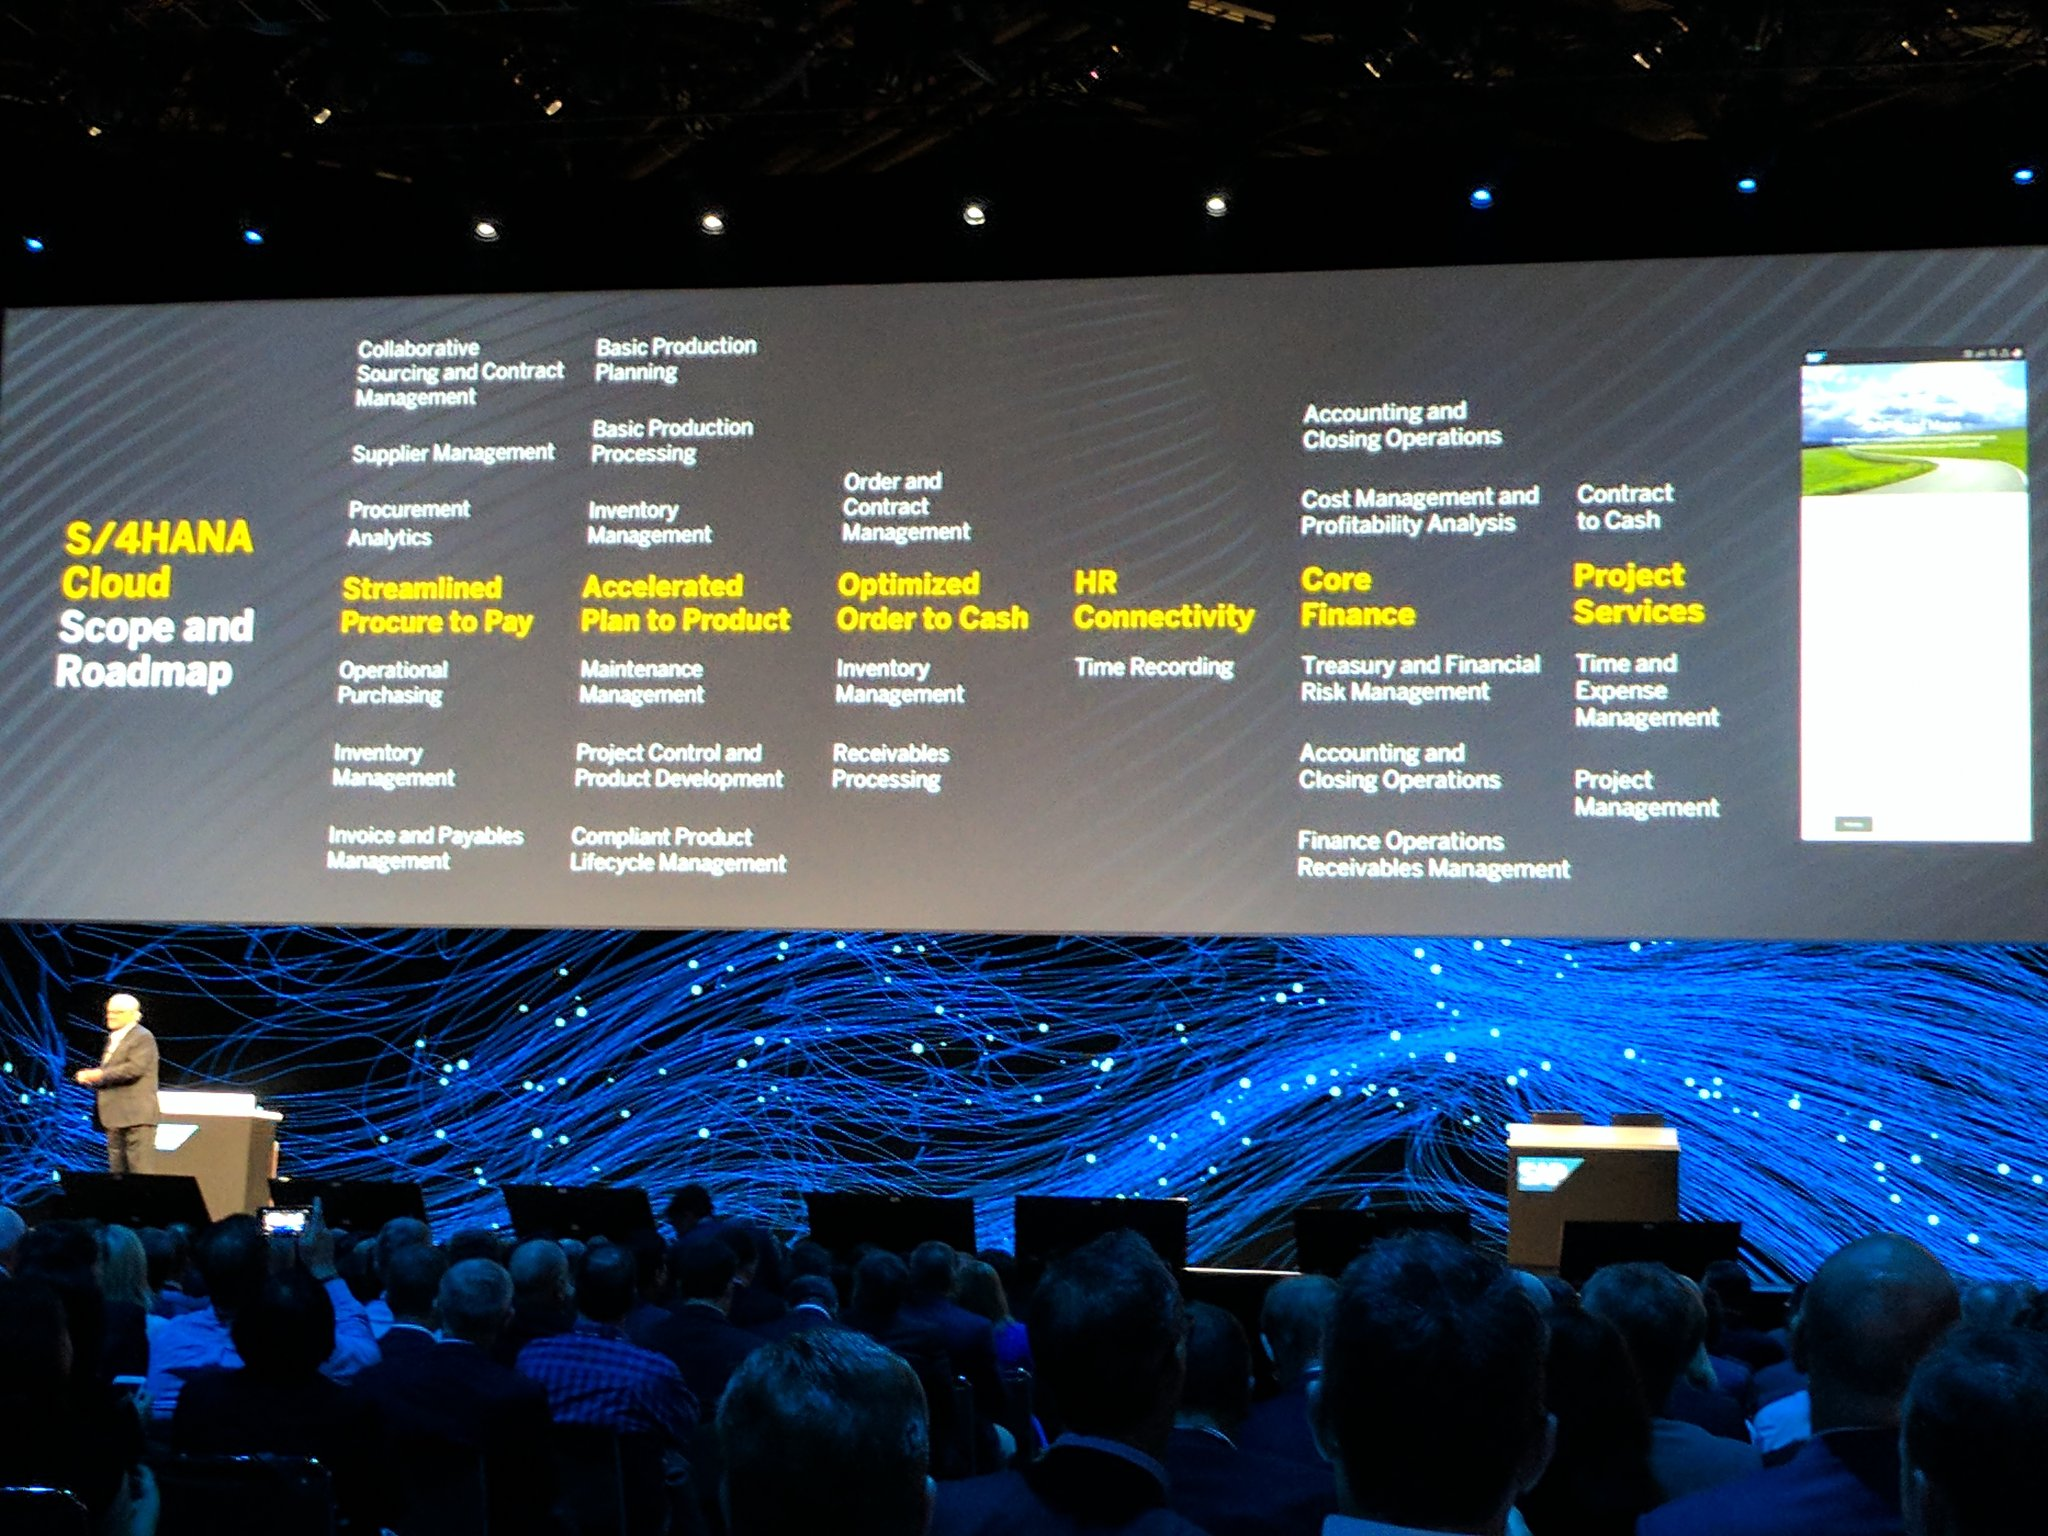 Plattner walks us through upcoming #S4HANA new capabilities. #SAPPHIRENOW https://t.co/zGA48Aqcos